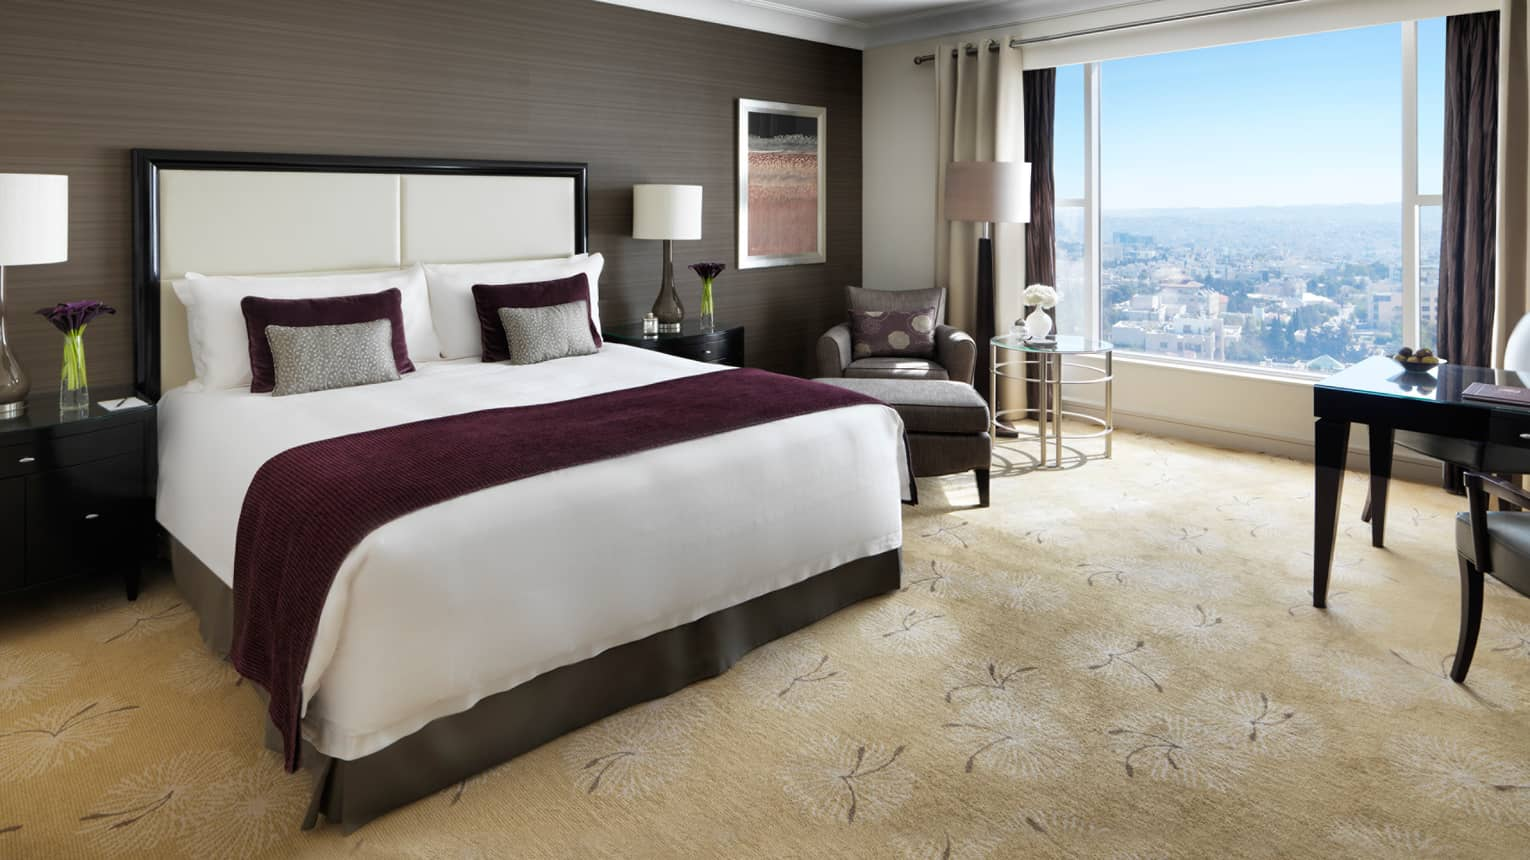 Premium room bed with burgundy blanket, wood-grain wall, plush carpet, window overlooking Abdoun area